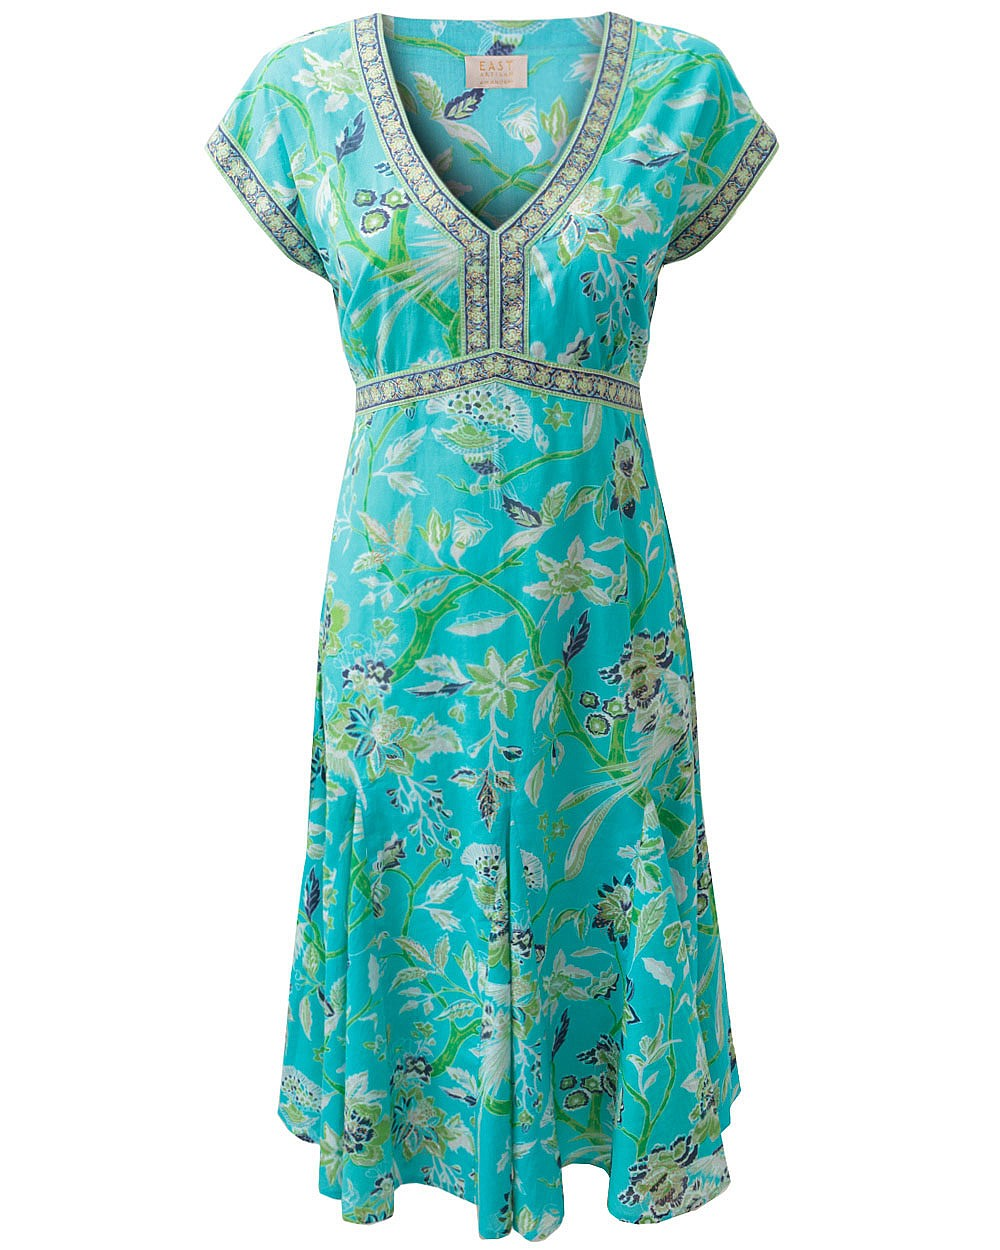 EAST ANOKHI PARADISE TURQUOISE DRESS MADE FROM 100% COTTON SIZES 8-20